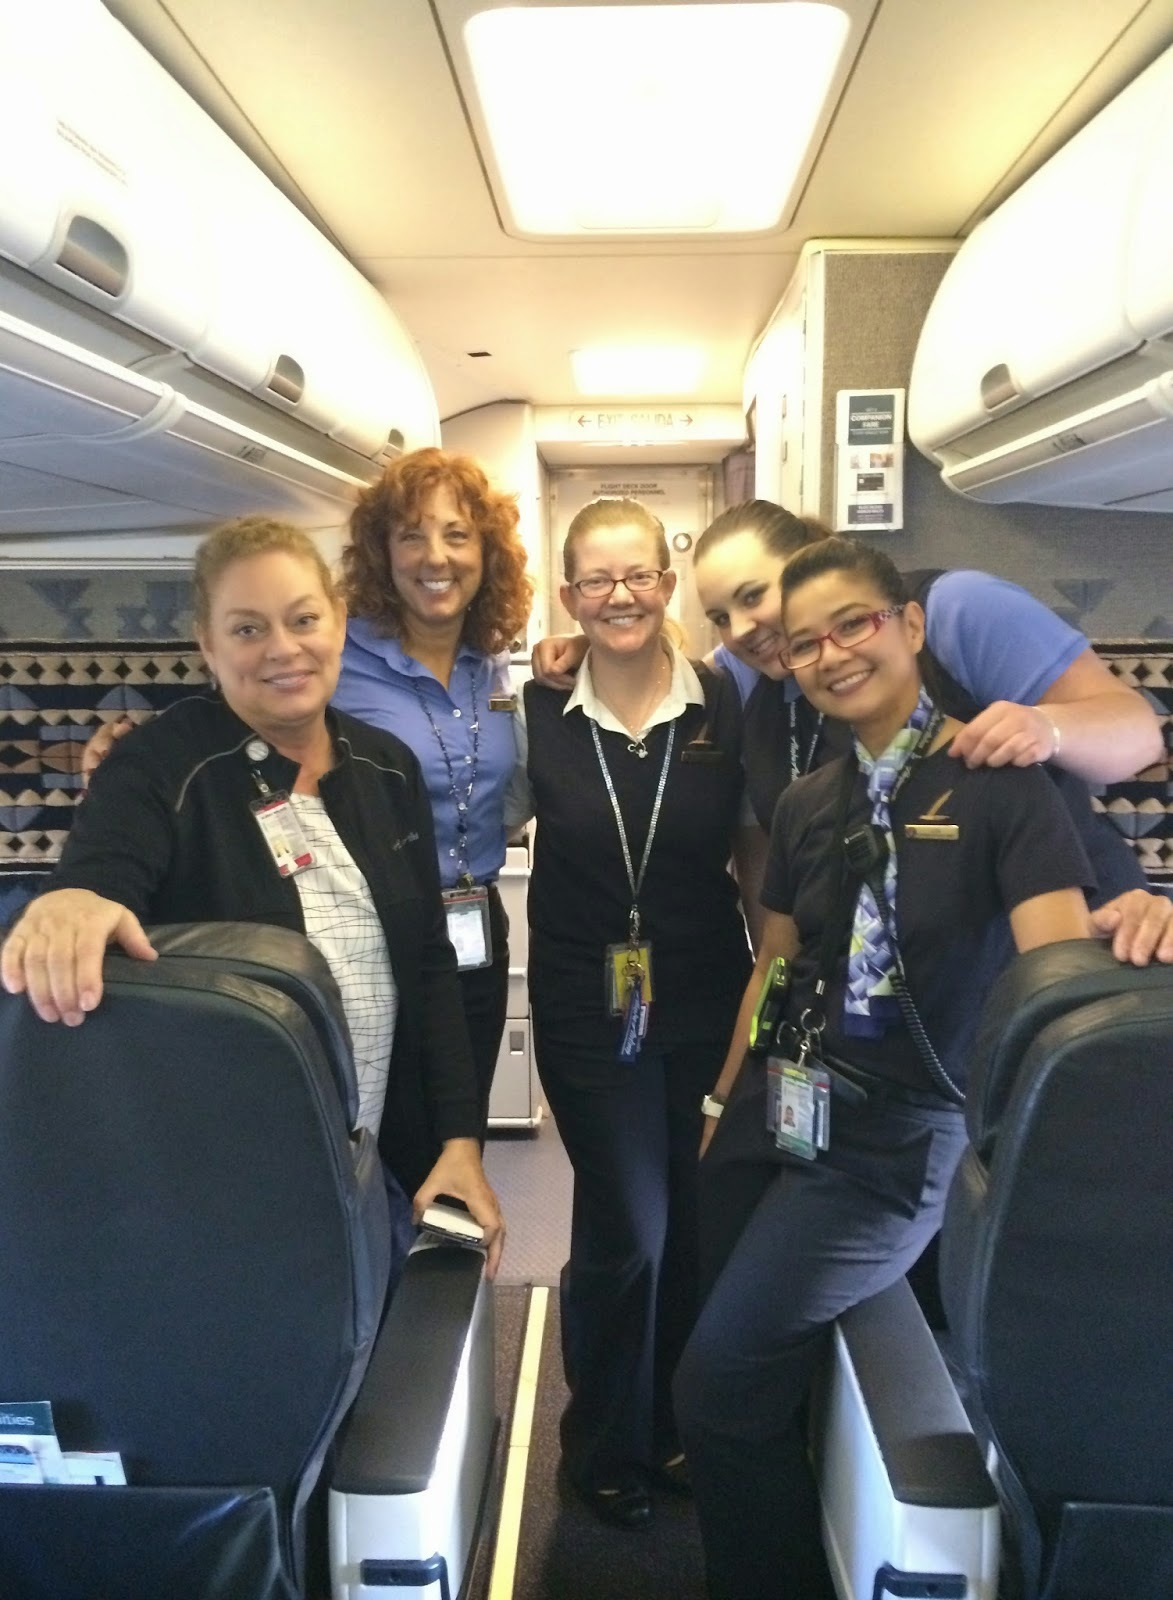 Five Alaska Airlines flight attendants smile for a group photo on the plane.